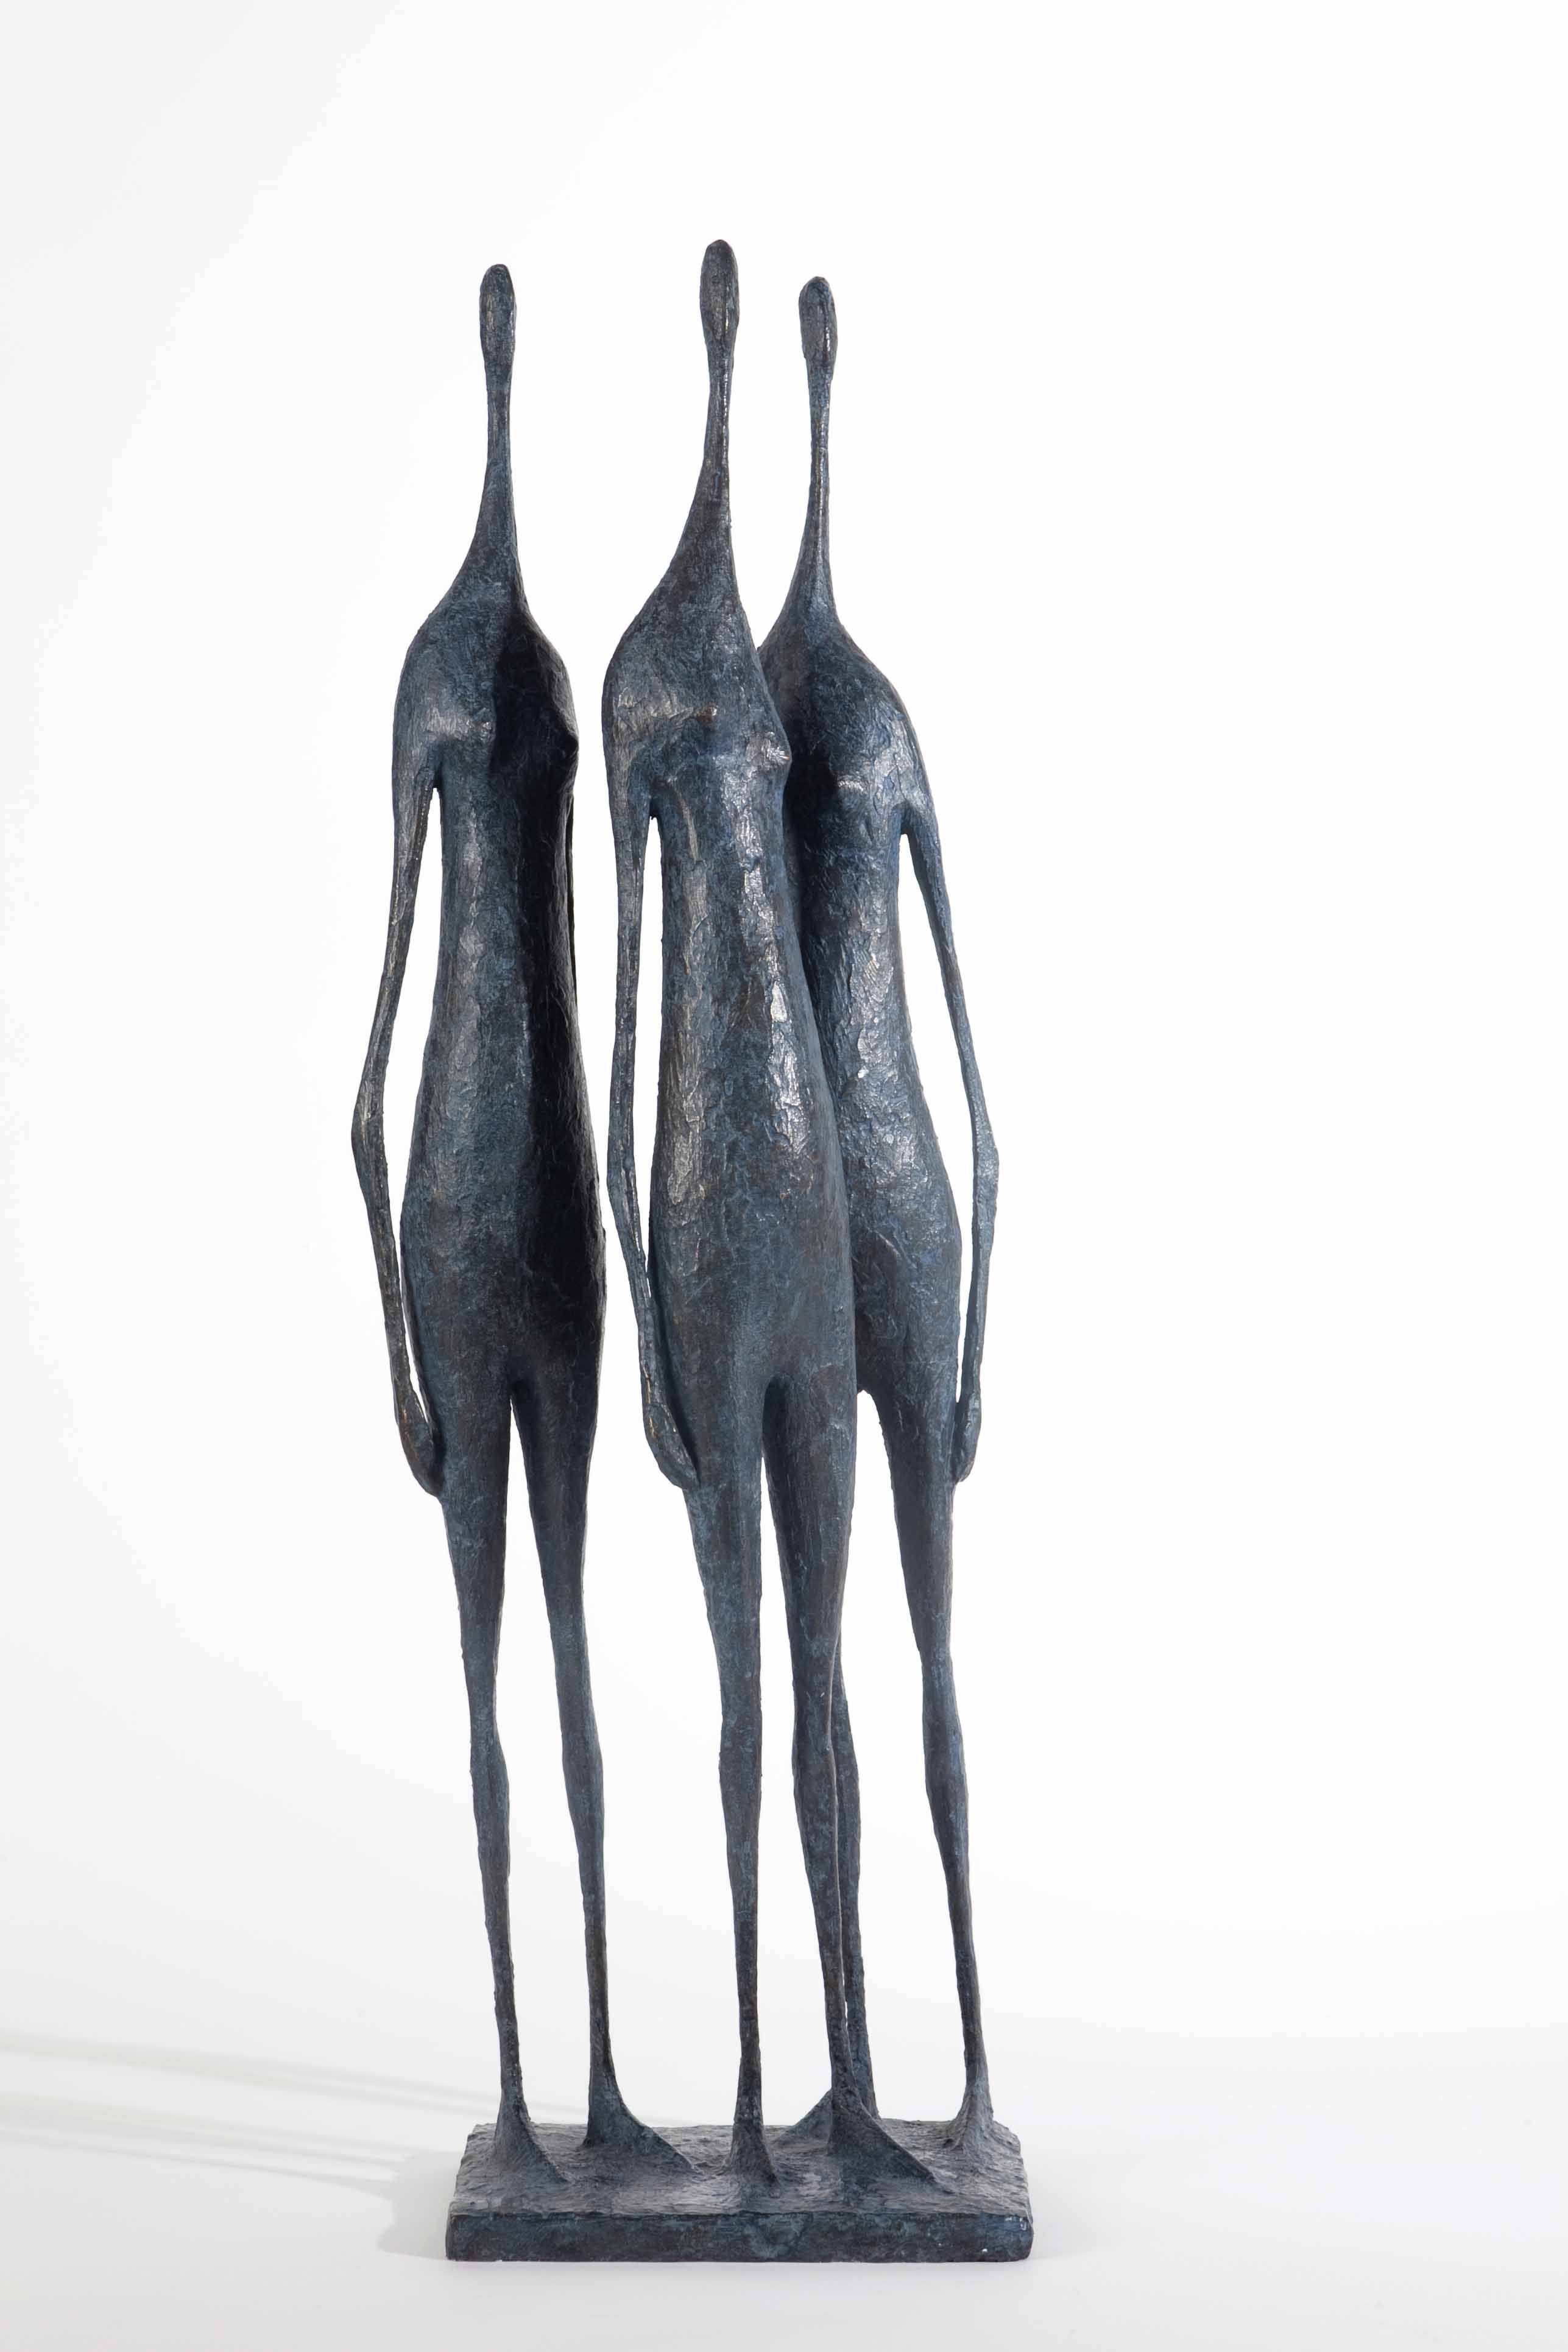 3 Figures debout V, Pierre Yermia,Sculpture contemporaine